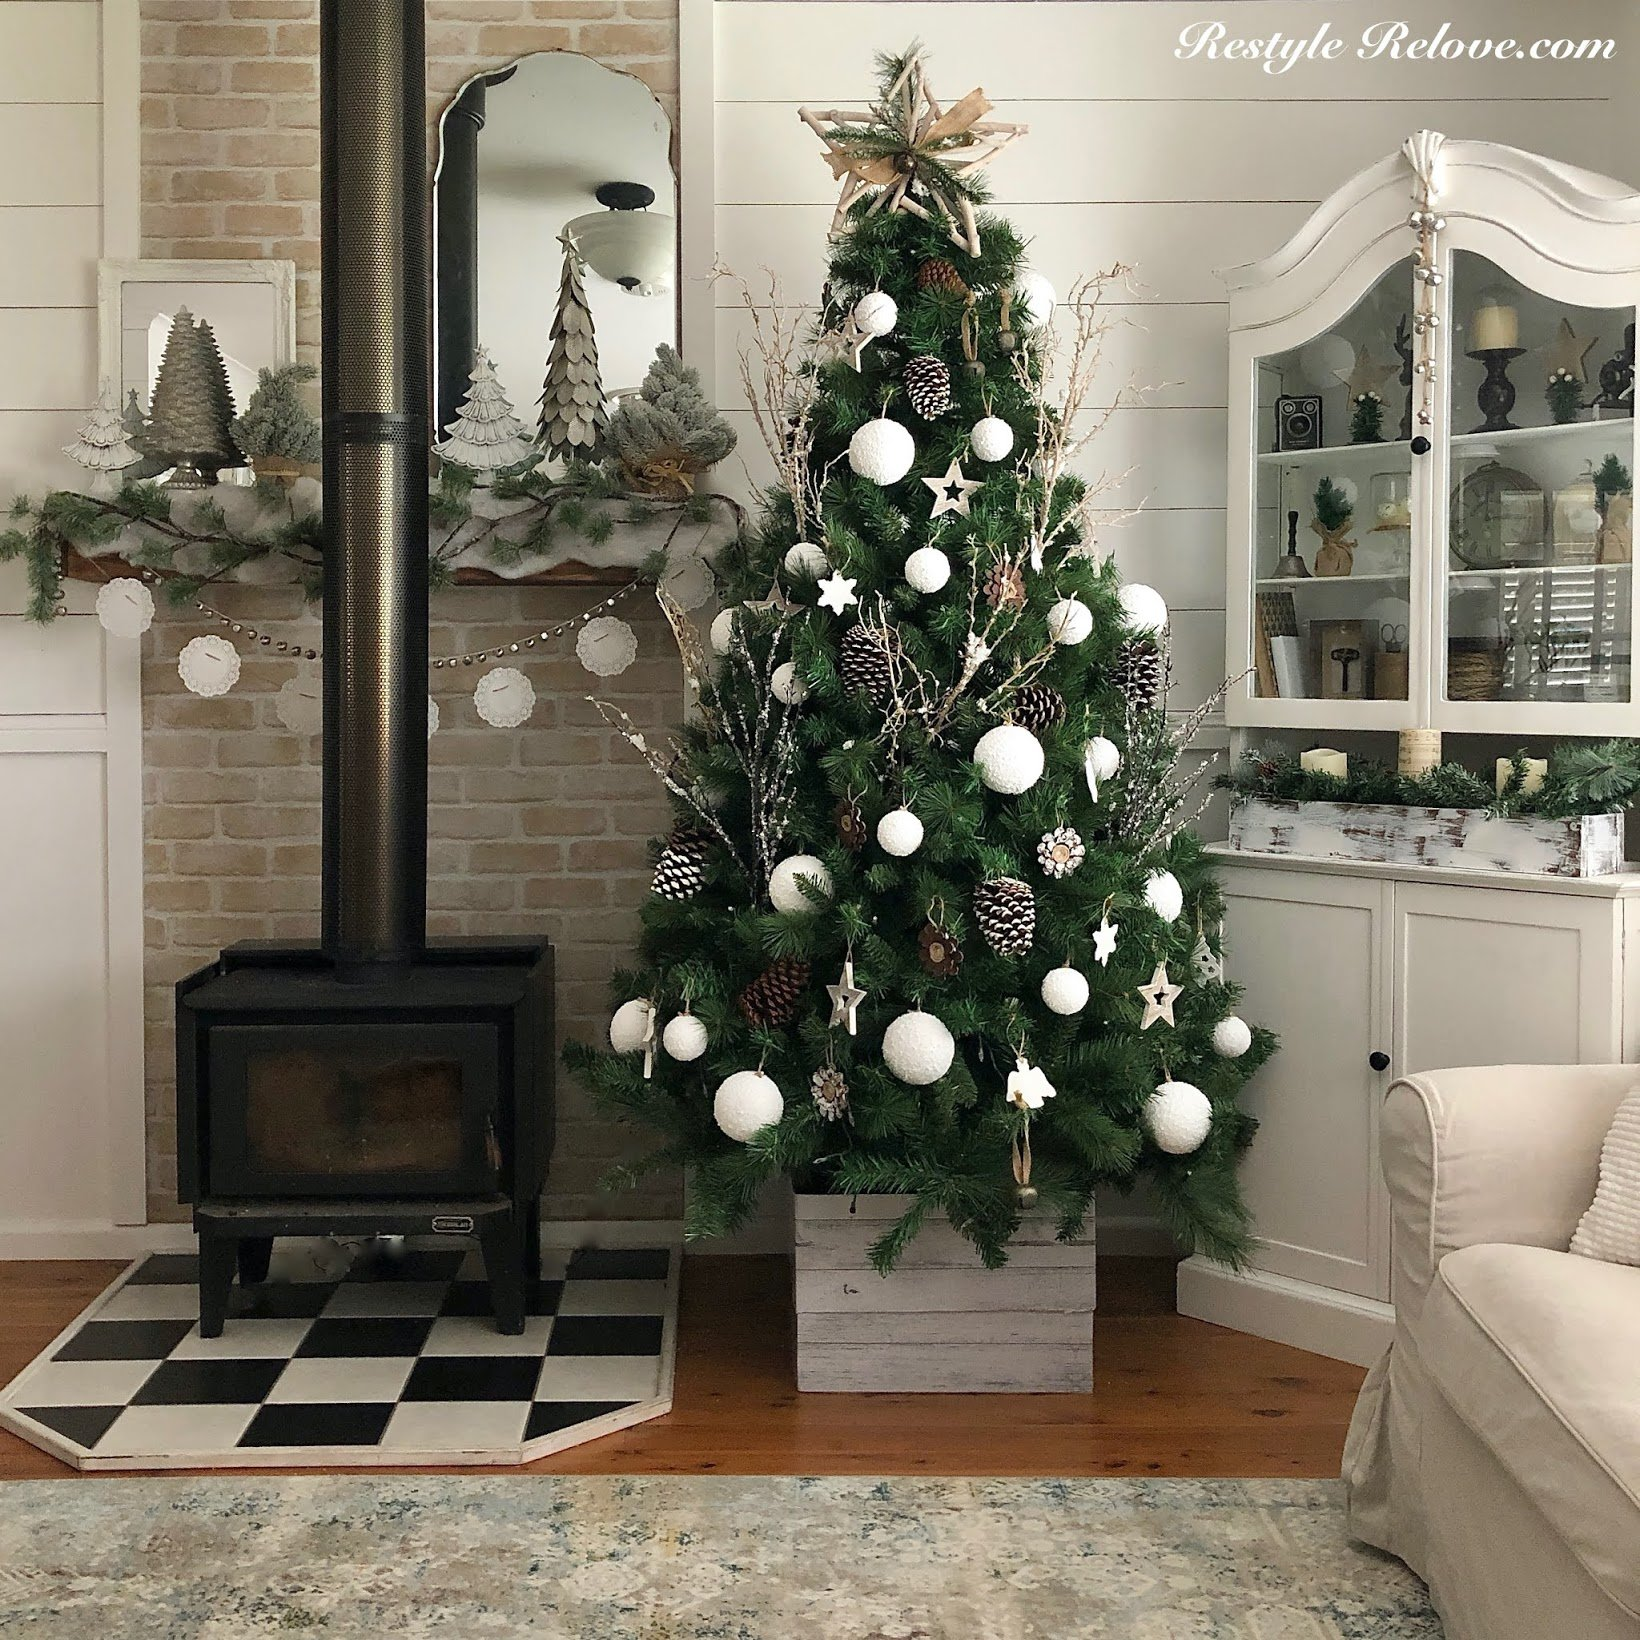 My Rustic Farmhouse Christmas Tree which is a feature for Waste Not Wednesday- 2020 Christmas Edition by Restyle Relove | www.raggedy-bits.com